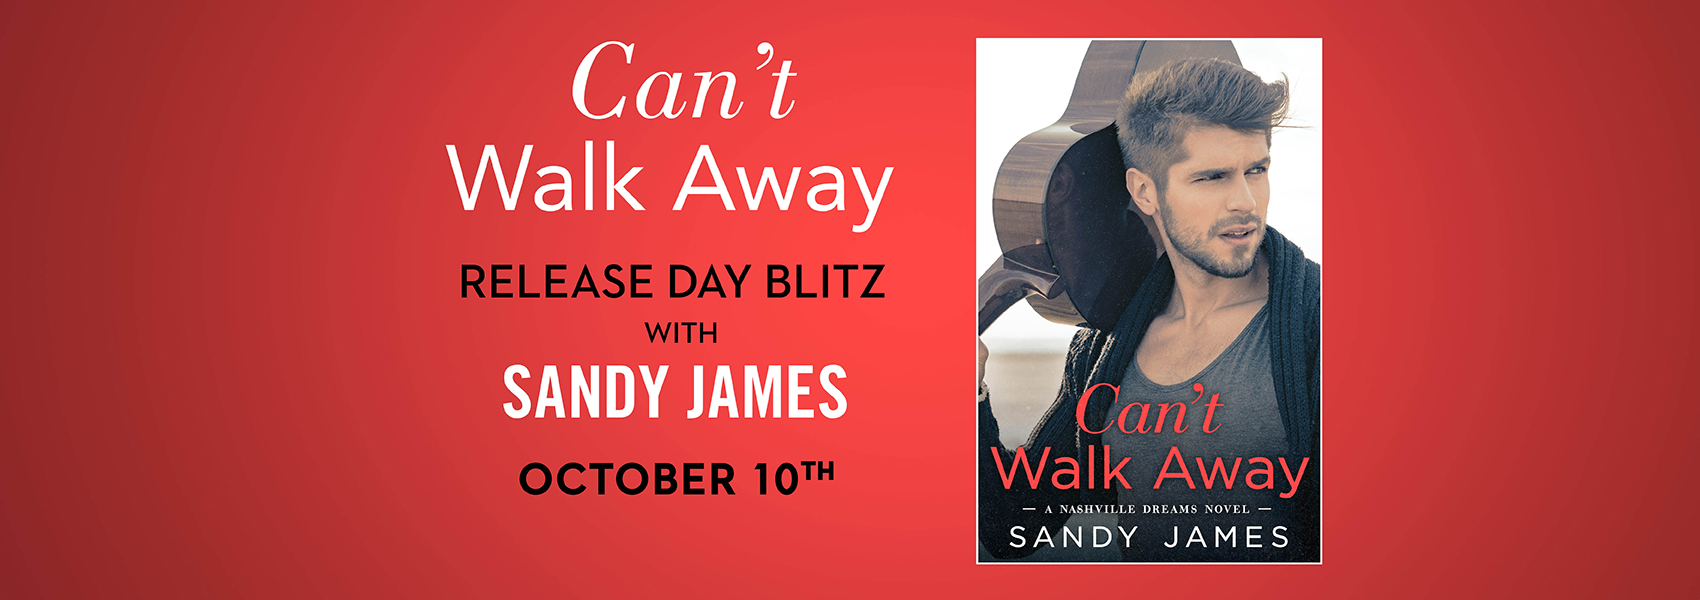 Enter to win 1 of 15 free ebook downloads of Can't Walk Away!